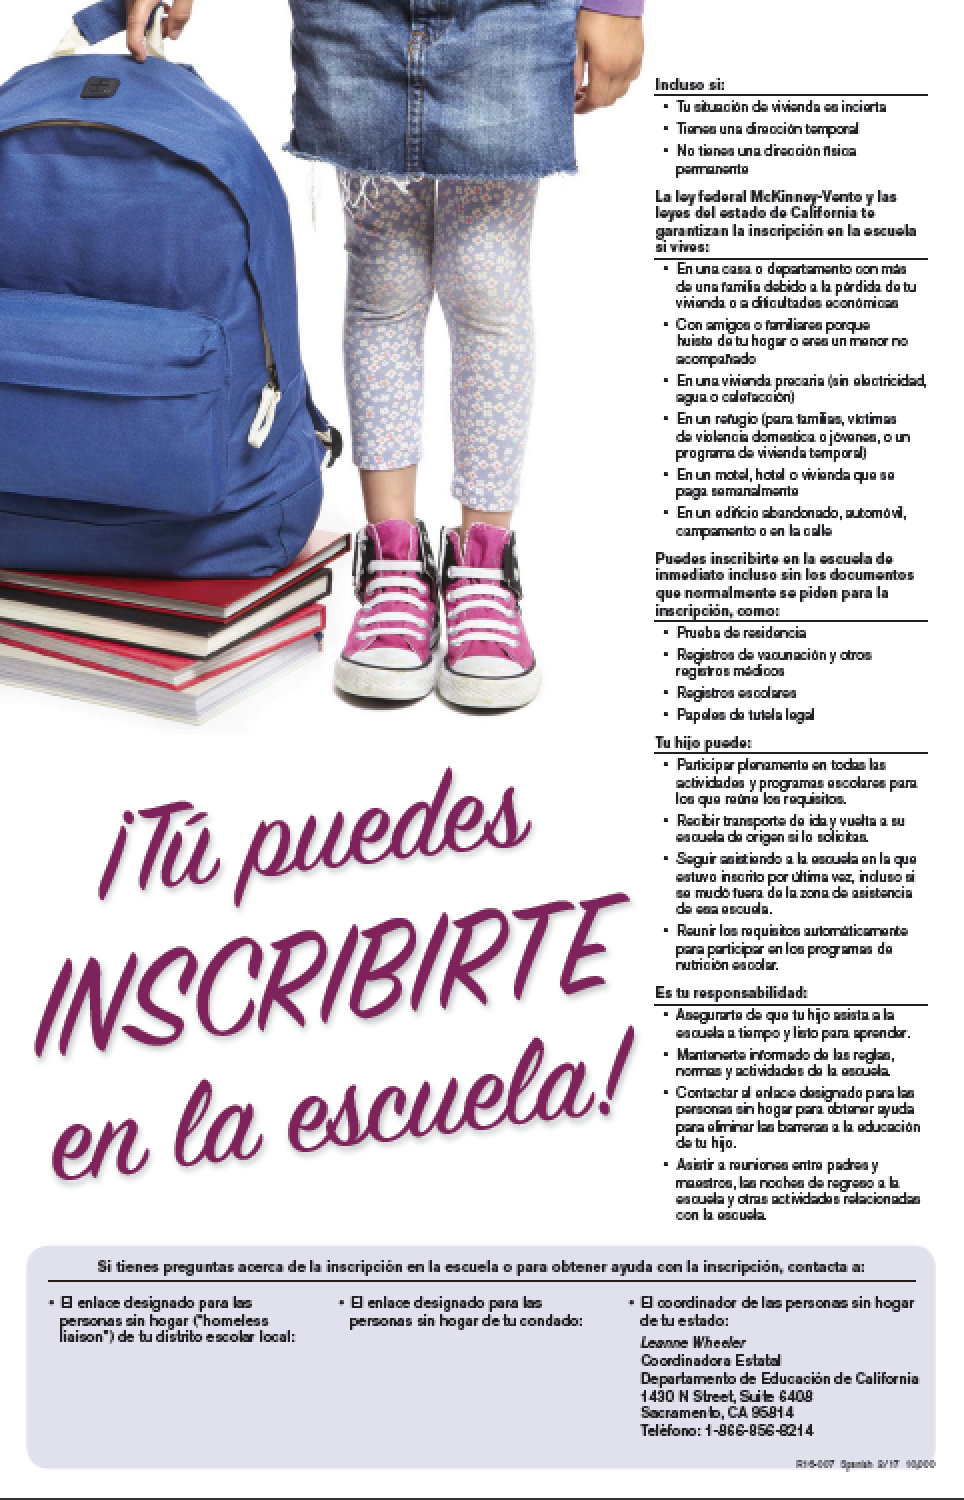 You can enroll McKinney Vento poster Spanish